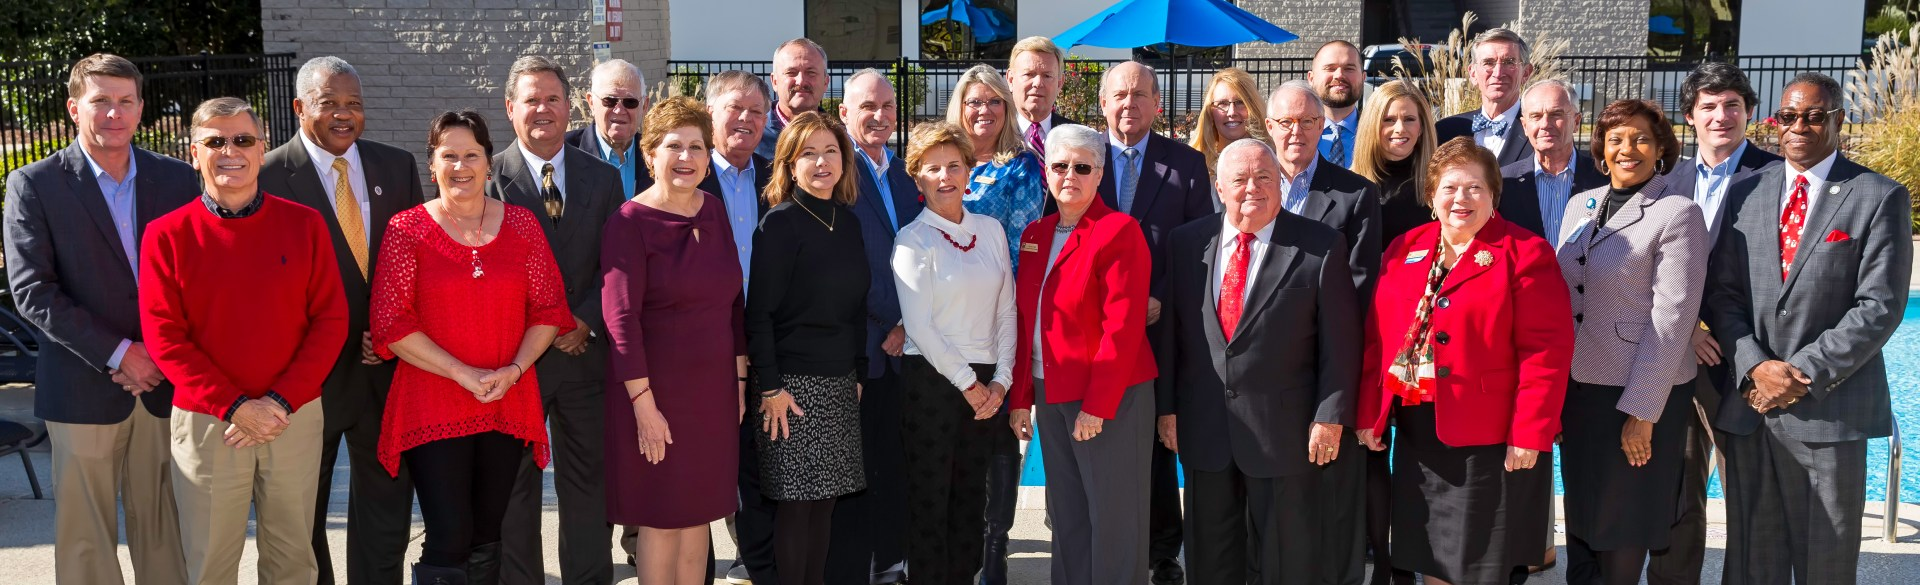 PCC Foundation Board Group Photo (2018)